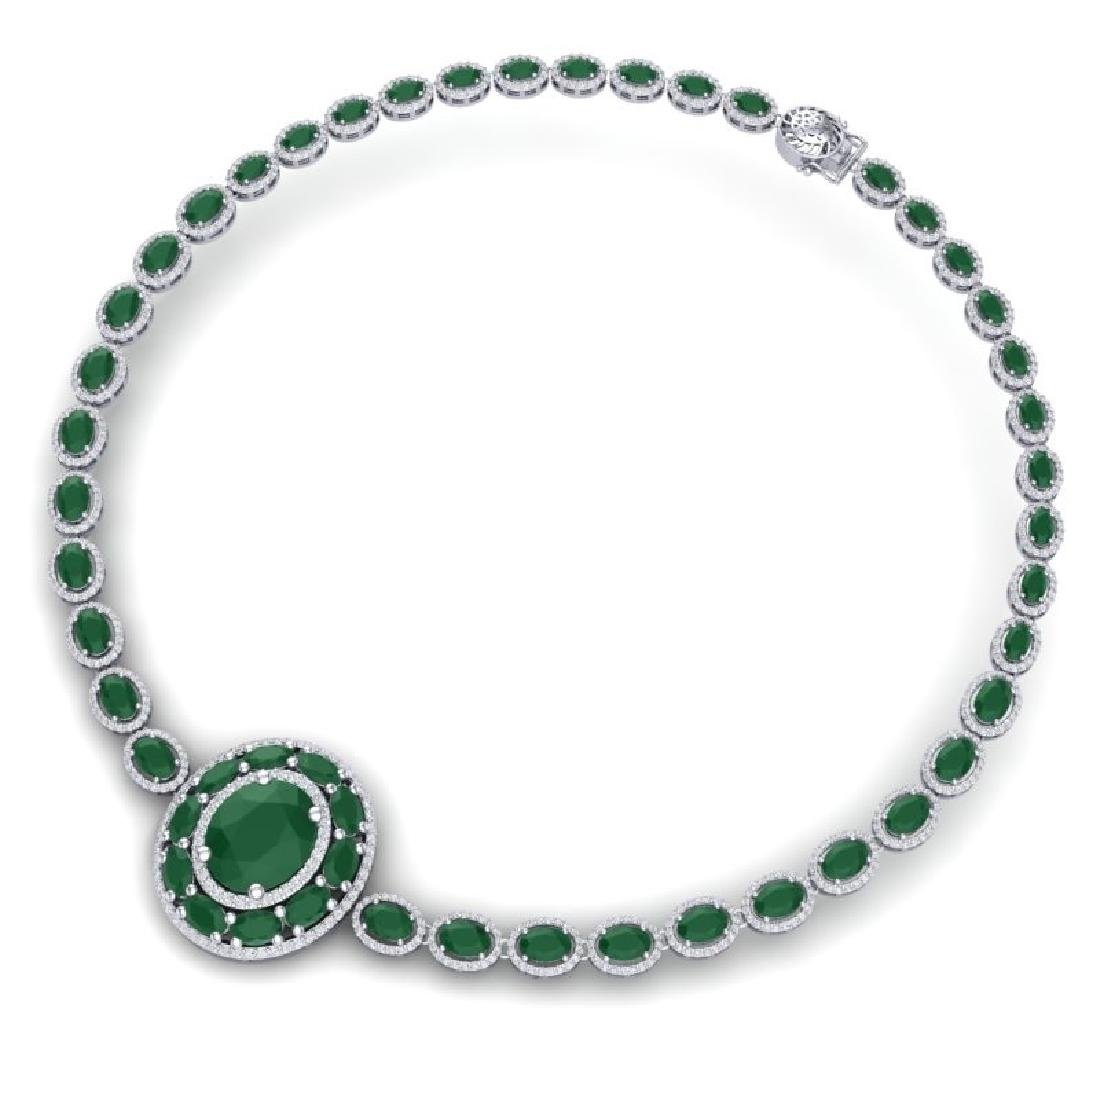 43.54 CTW Royalty Emerald & VS Diamond Necklace 18K - 3